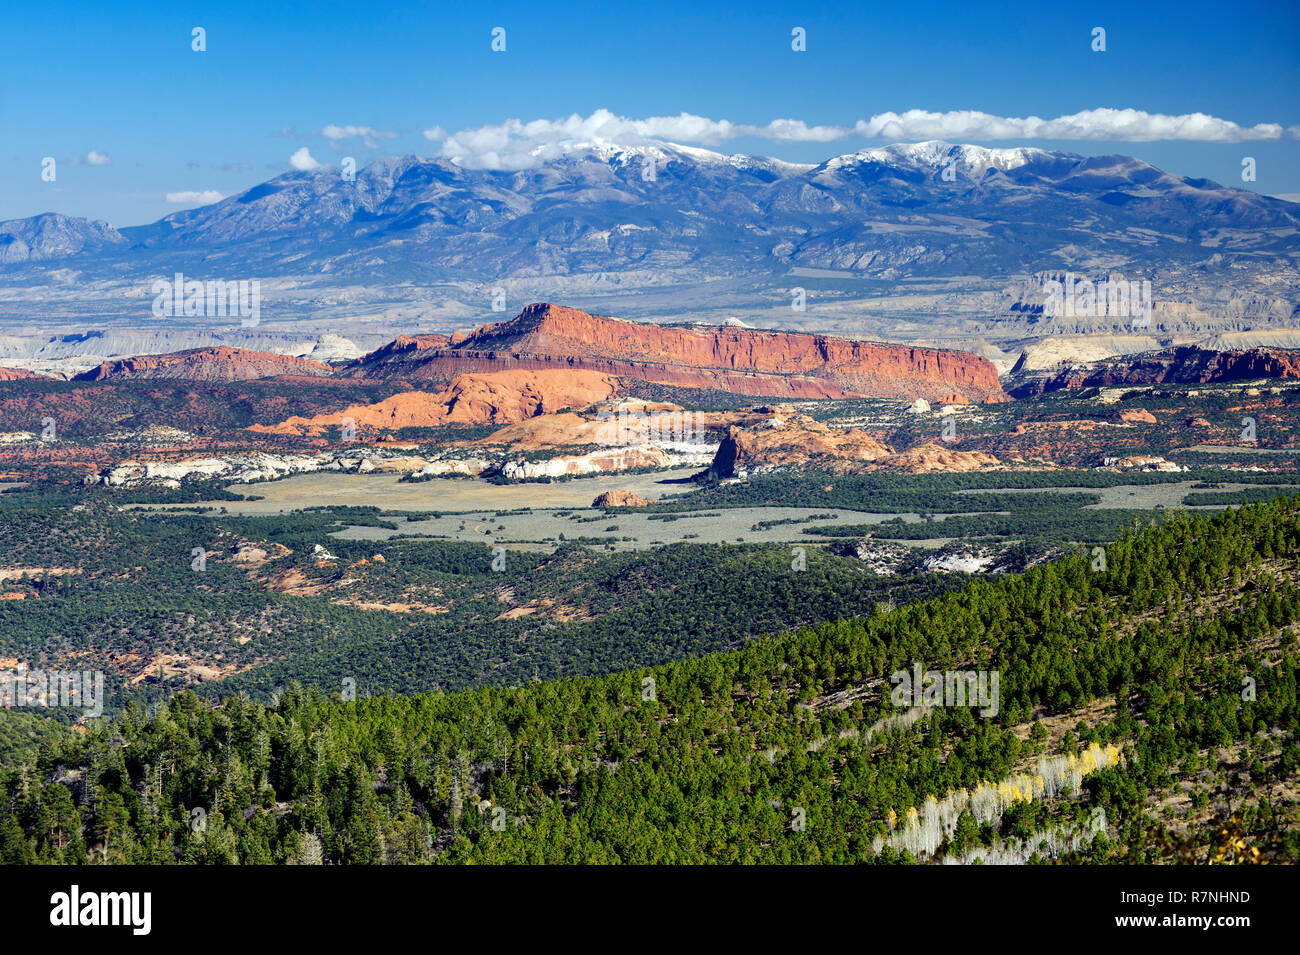 henry-mountains-and-waterpocket-fold-seen-from-larb-hollow-overlook-on-utahs-scenic-byway-12-R7NHND.jpg